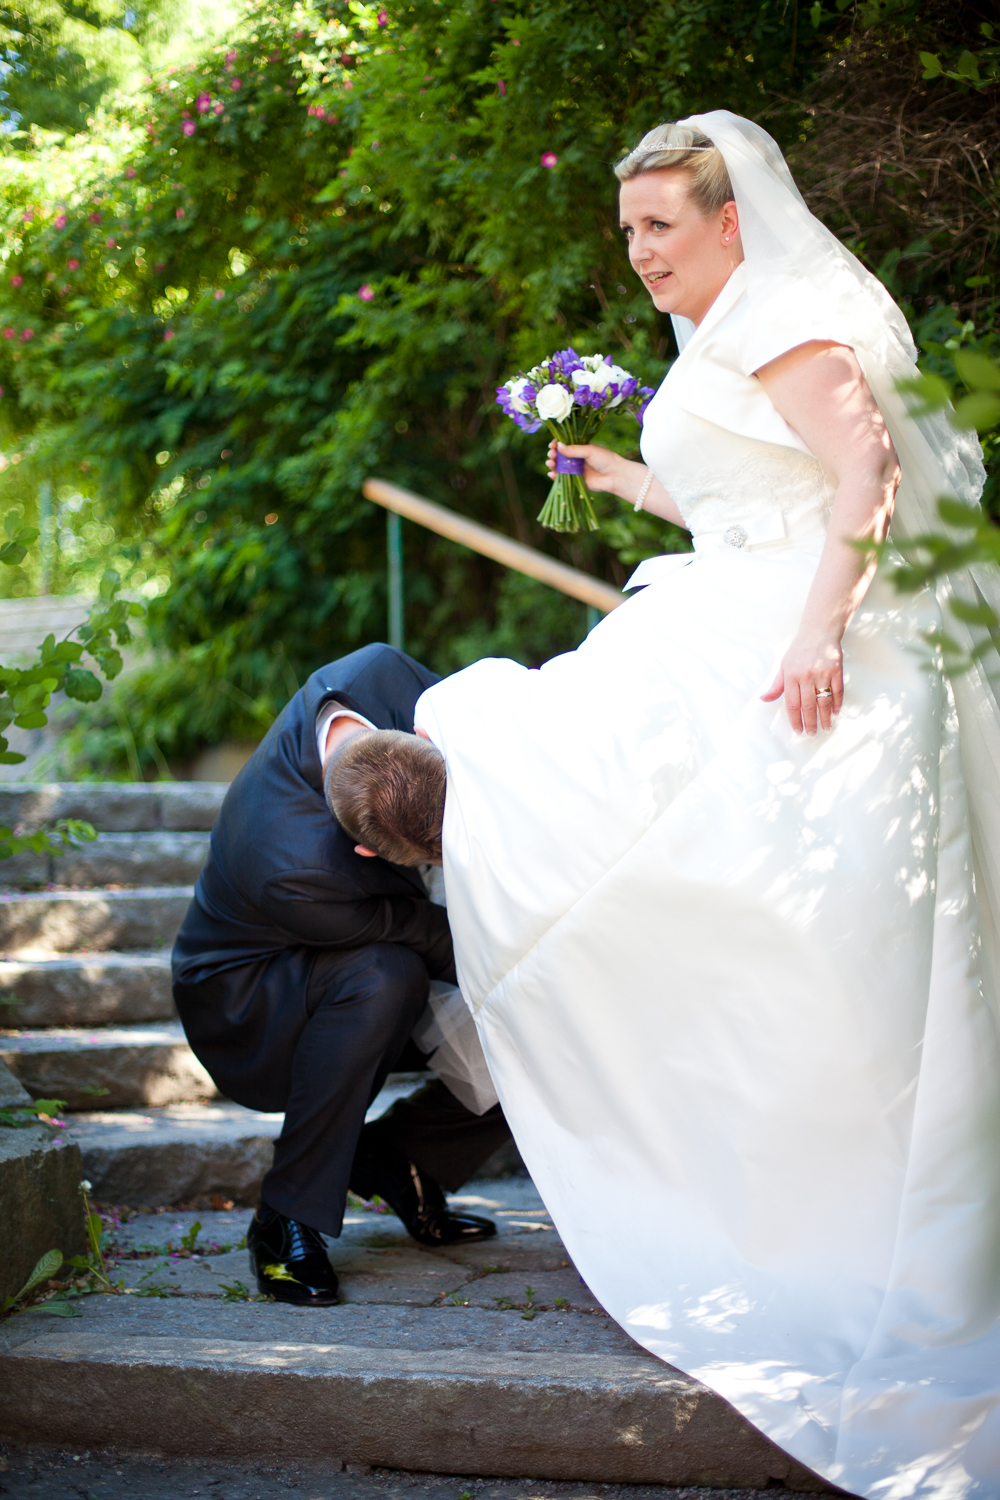 wedding_louise_fredrik-32.jpg